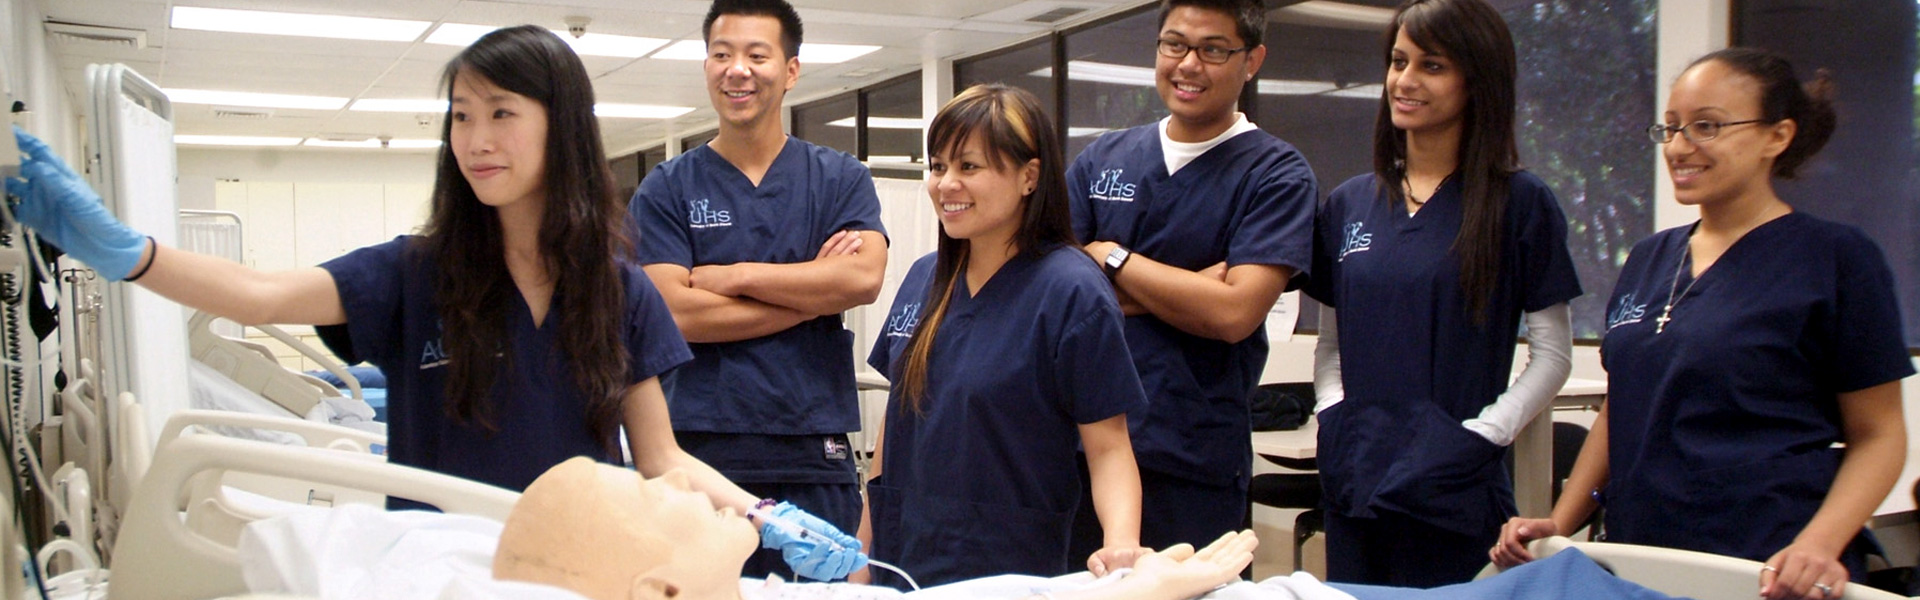 Los Angeles Nursing School